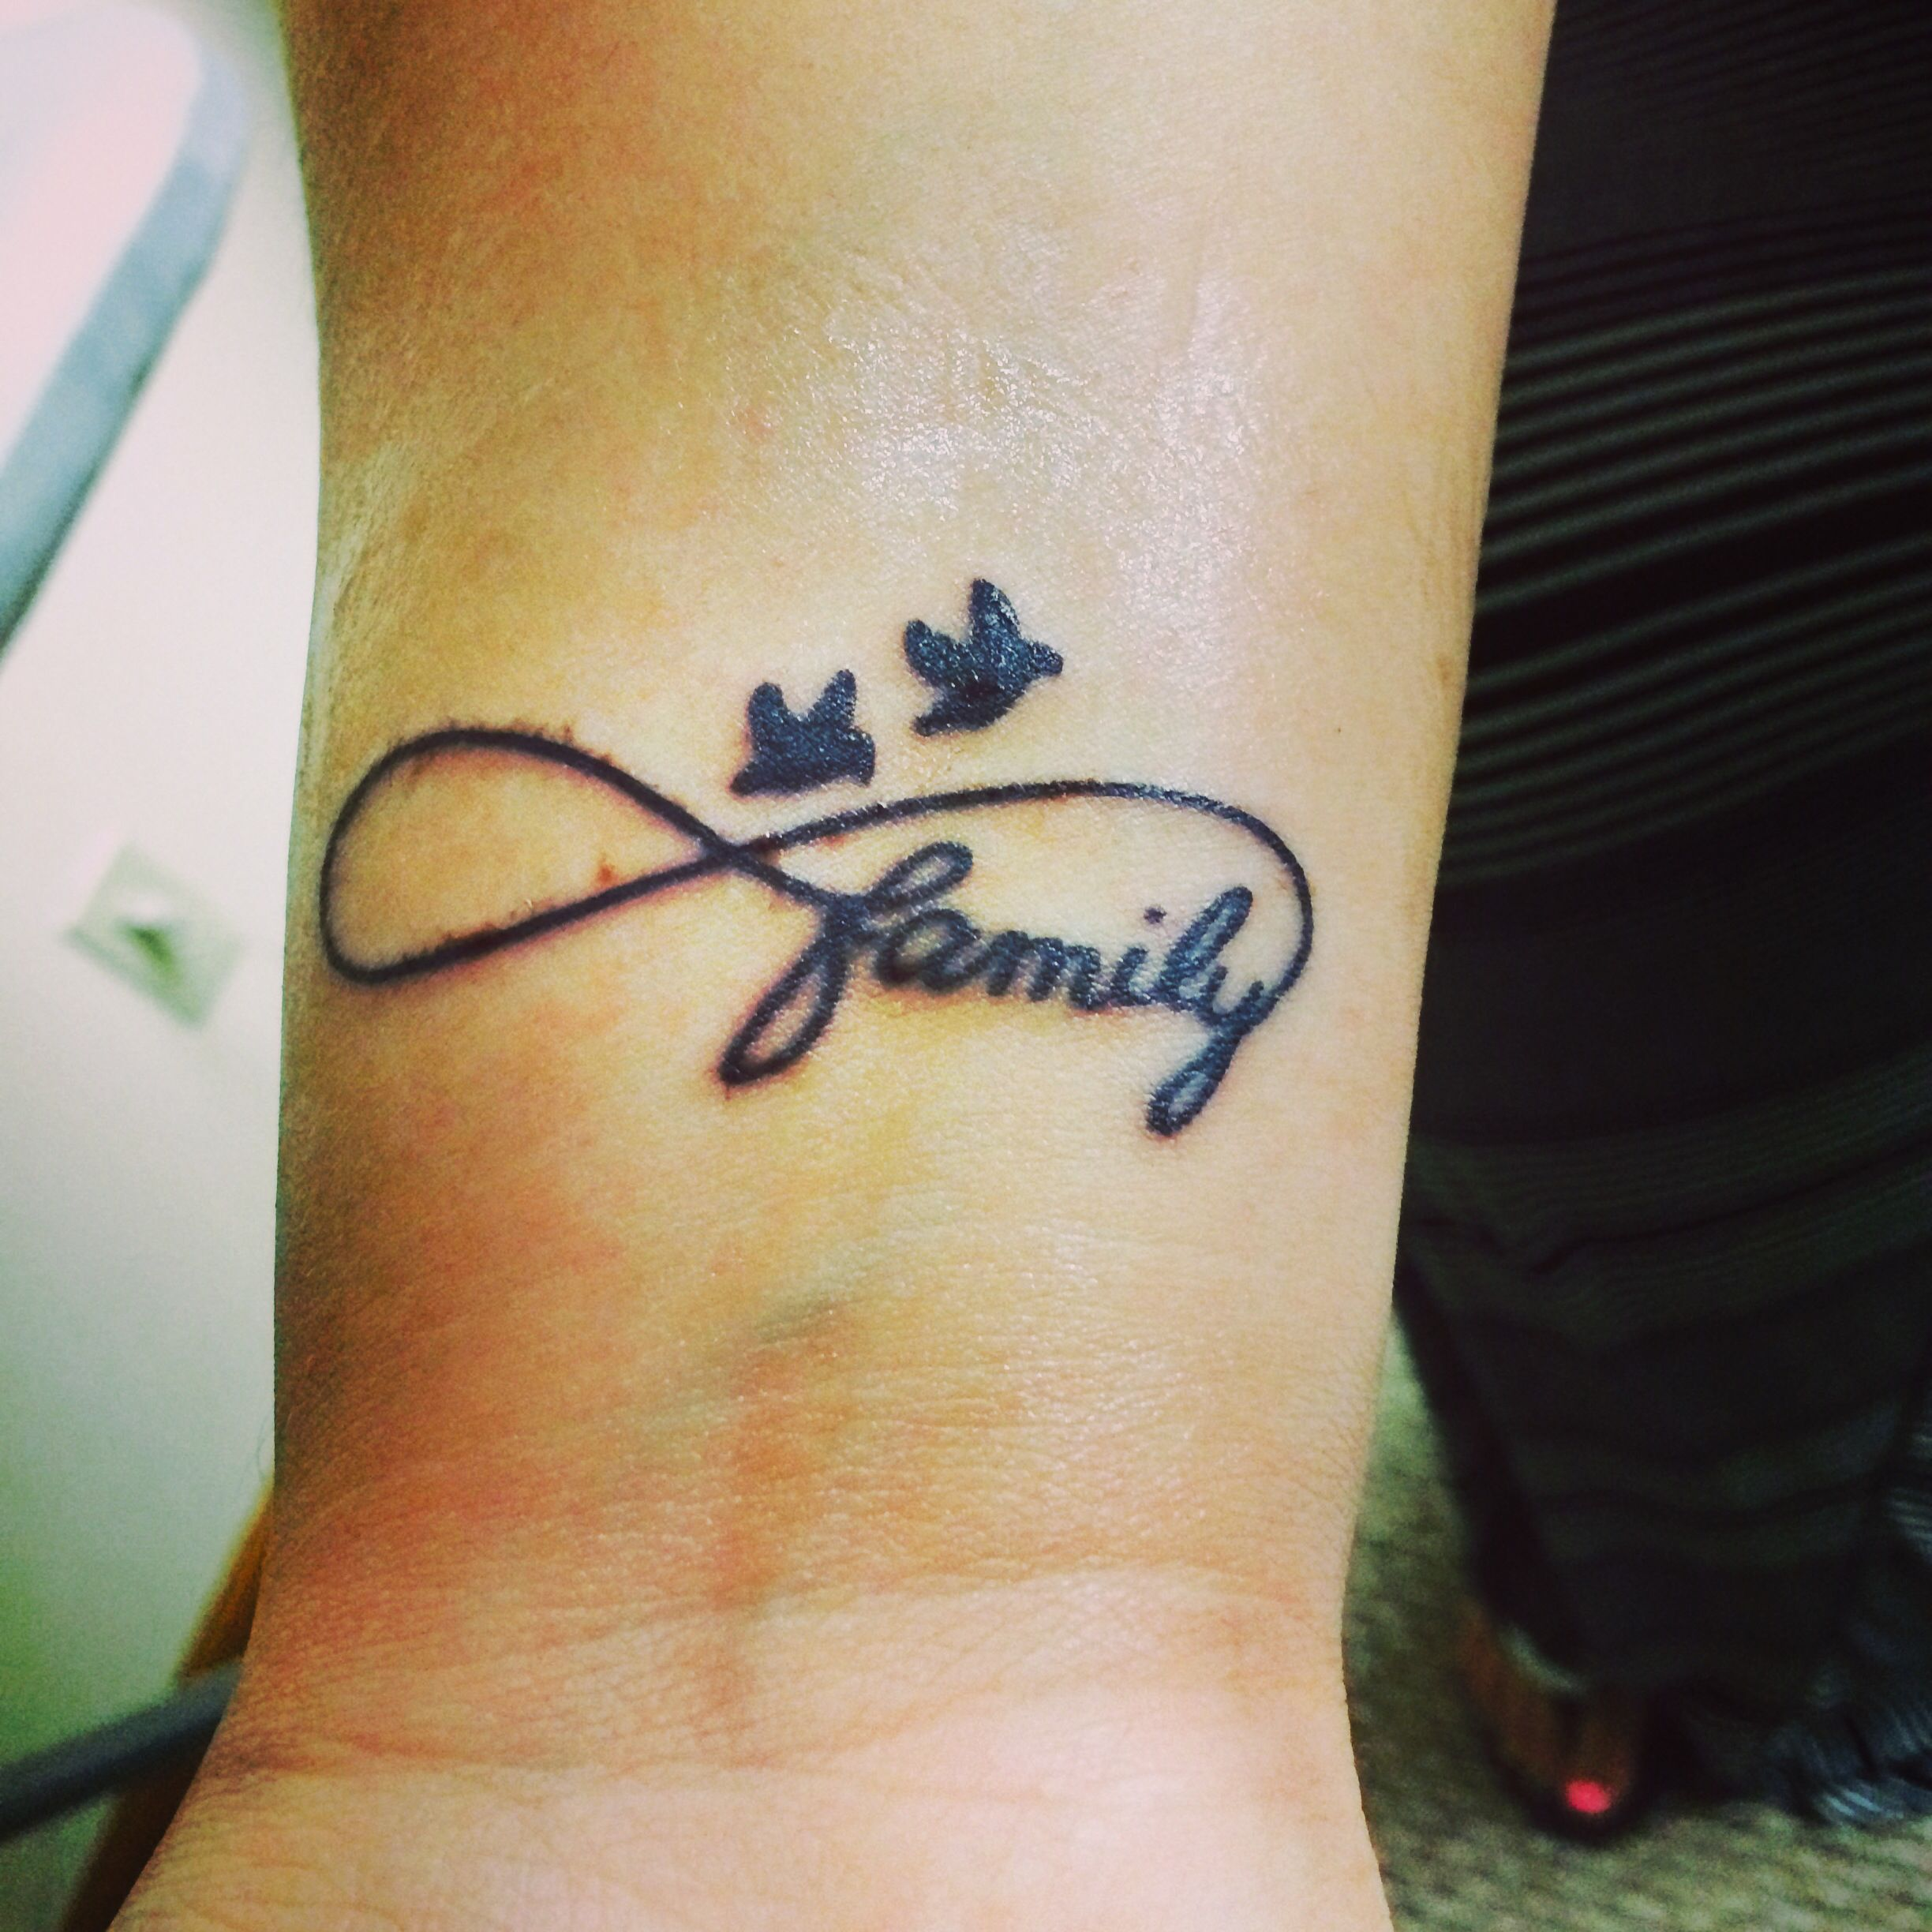 This Is My Lovely Family Tattoo The Word Family Is In A Infinity Sign Because Family Is Infinite And The Birds Represent My Family Tattoos New Tattoos Tattoos